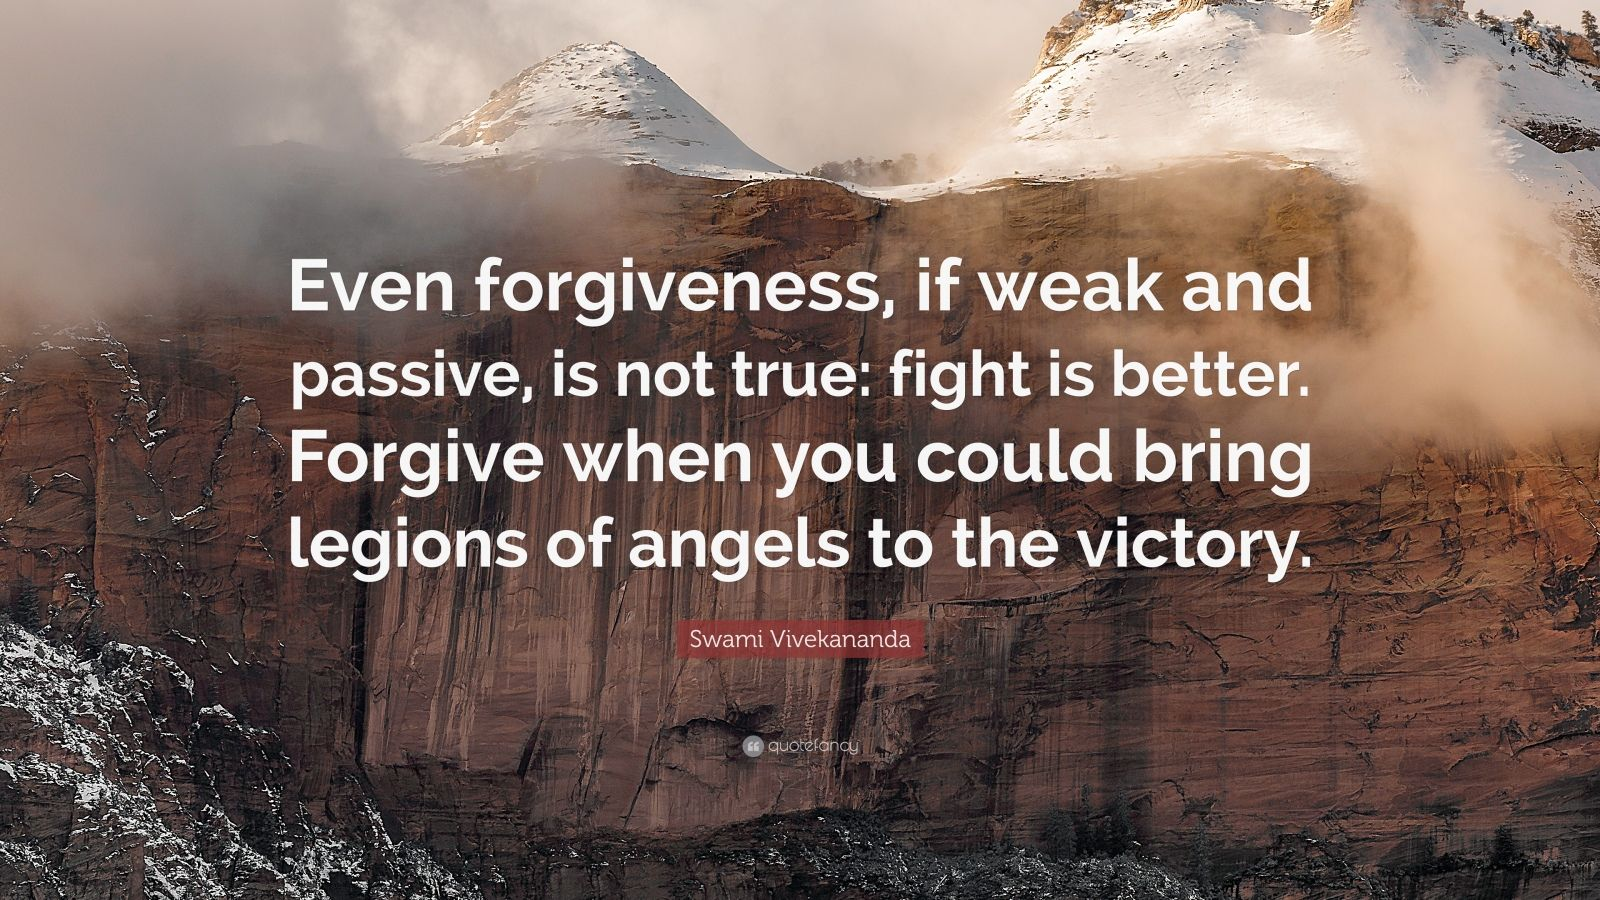 """Swami Vivekananda Quote: """"Even forgiveness, if weak and passive, is not true: fight is better. Forgive when you could bring legions of angels to the victory."""""""